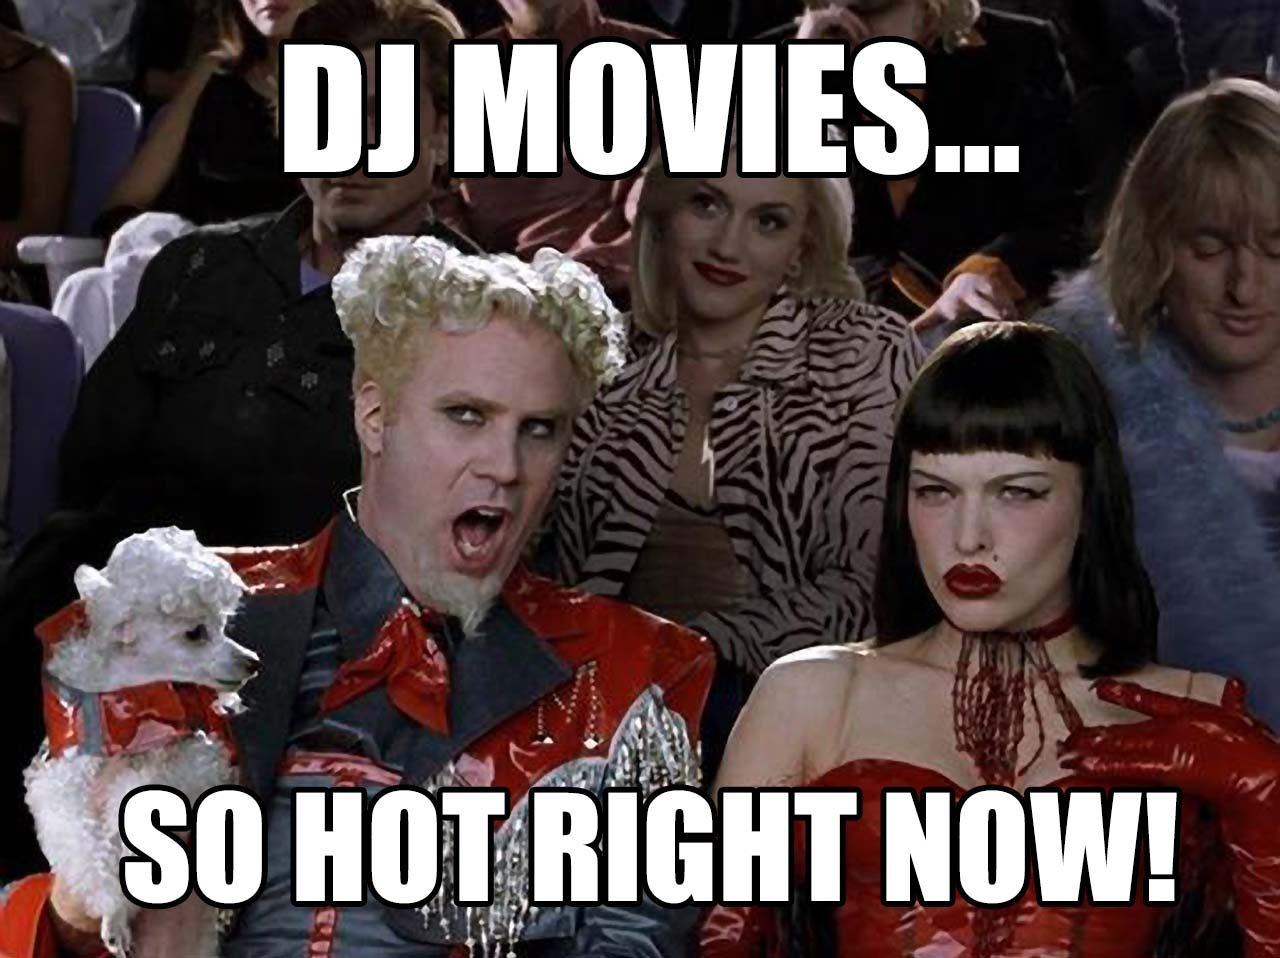 Dj Movies So Hot Right Now Djworx Funny Memes Best Funny Pictures Funny Pictures